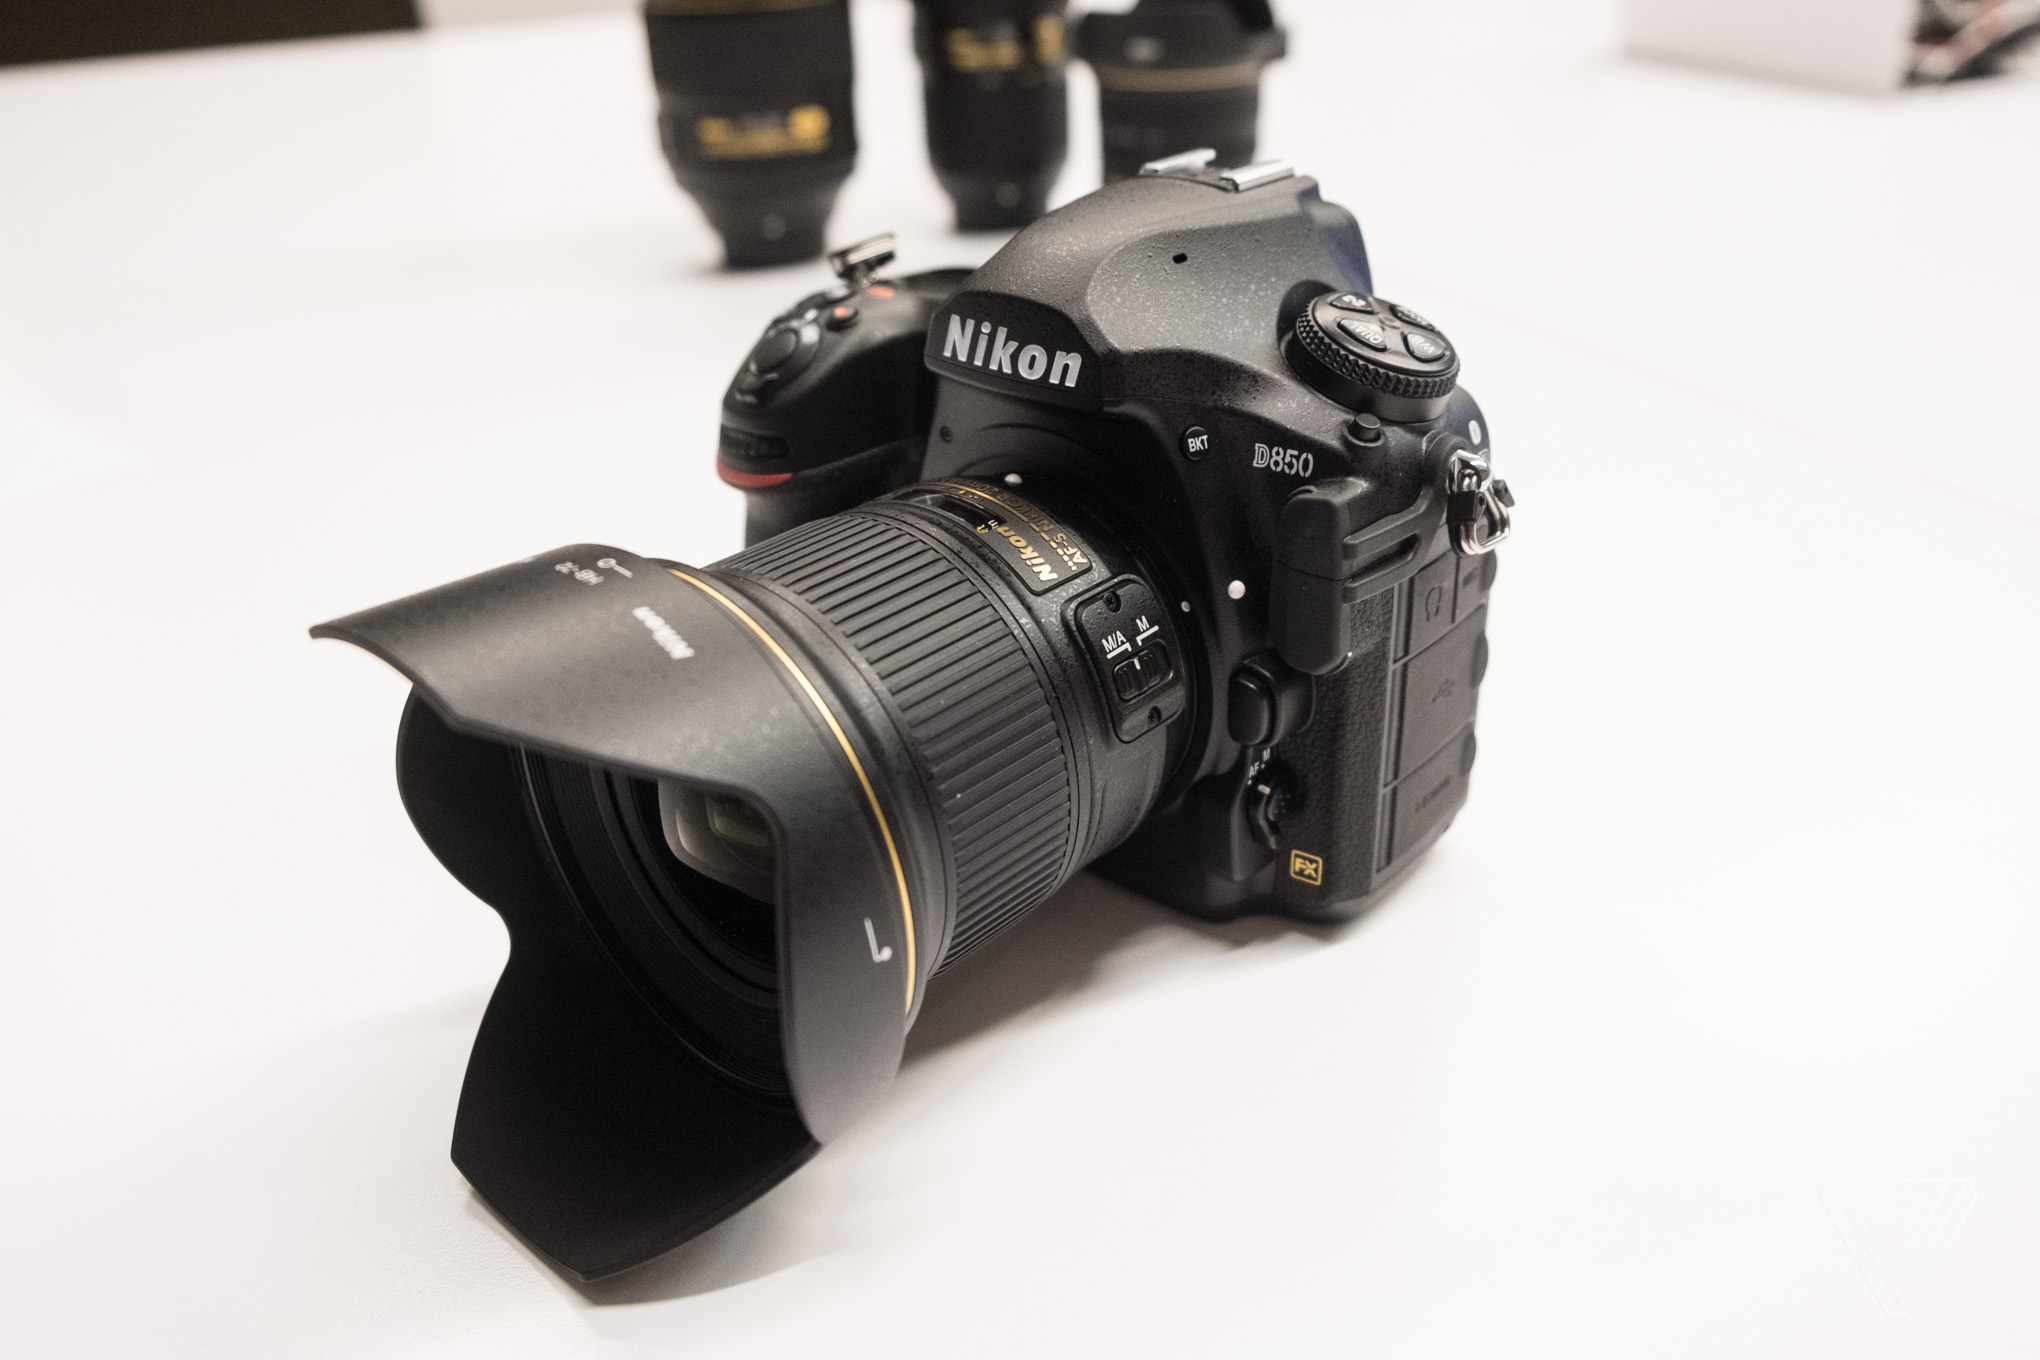 Nikon reveals D850 full-frame DSLR megapixel monster